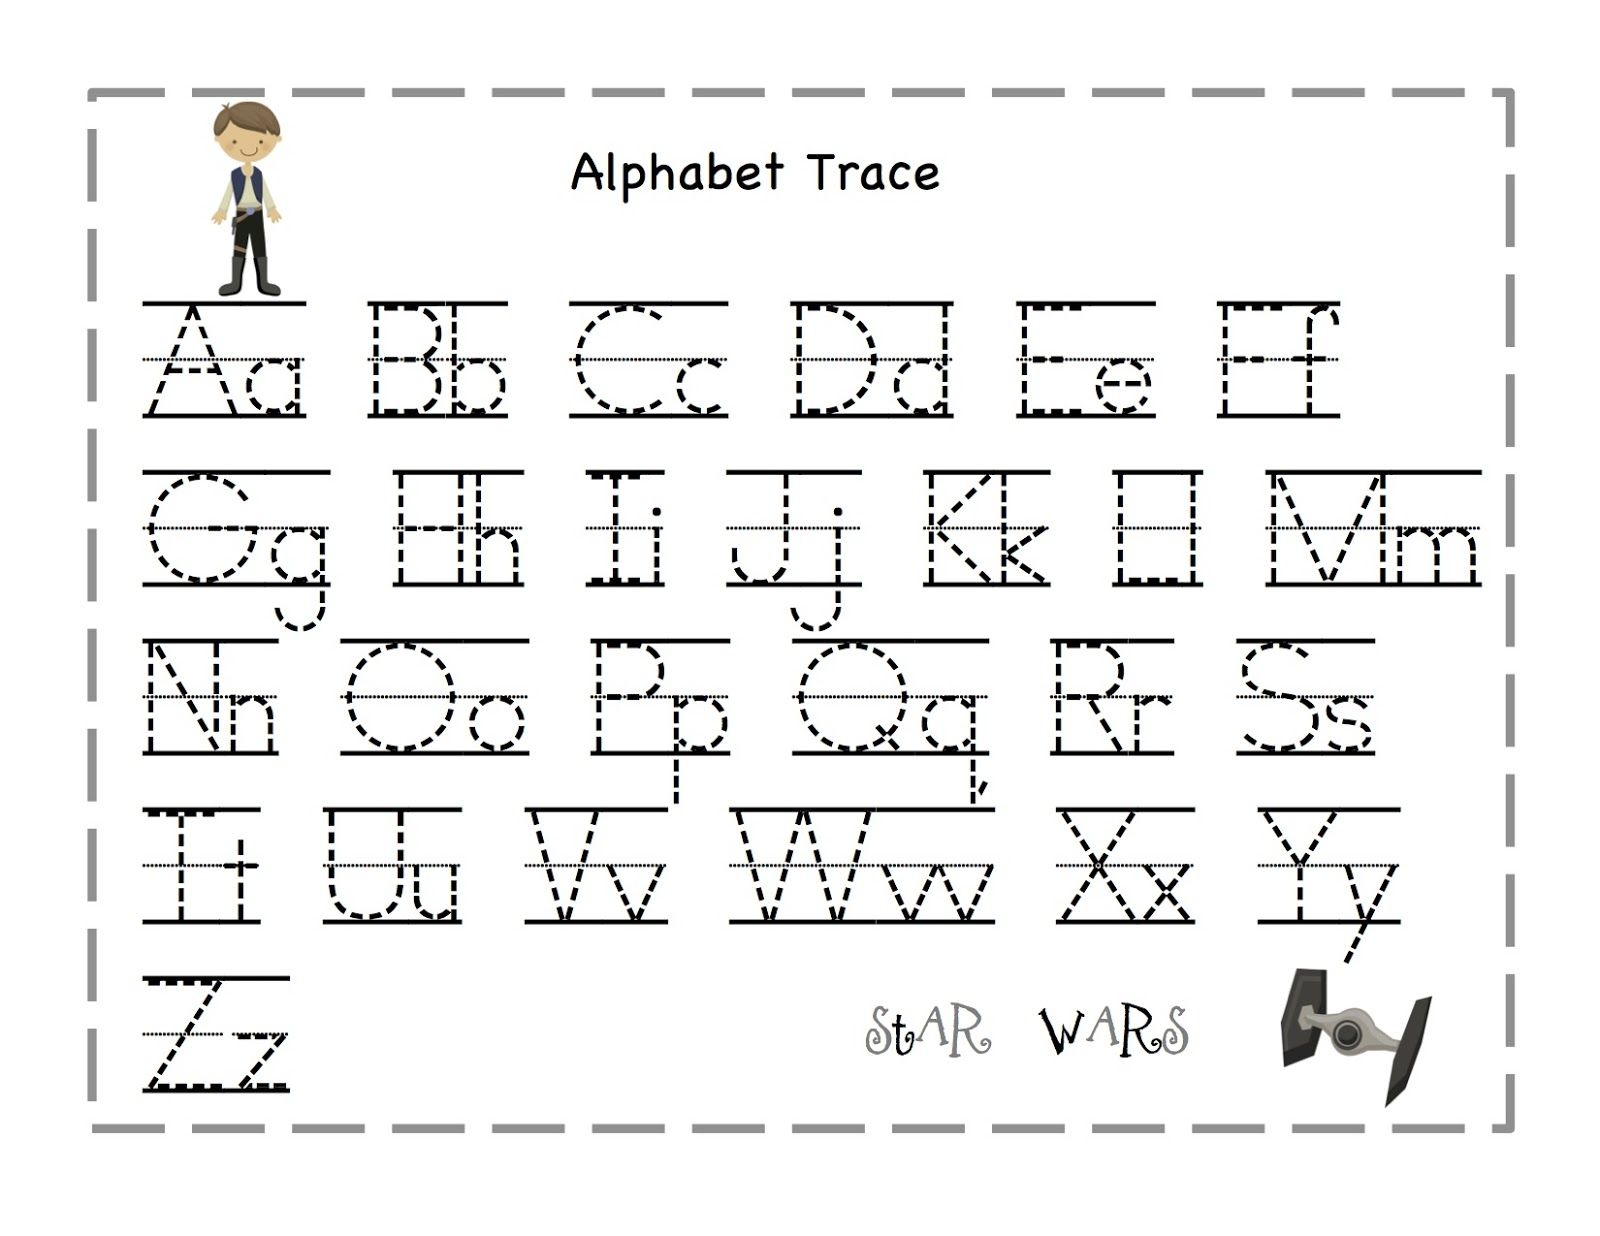 The Alphabet Tracing | Preschool Worksheets, Abc Tracing for Practice Tracing Letters Preschool